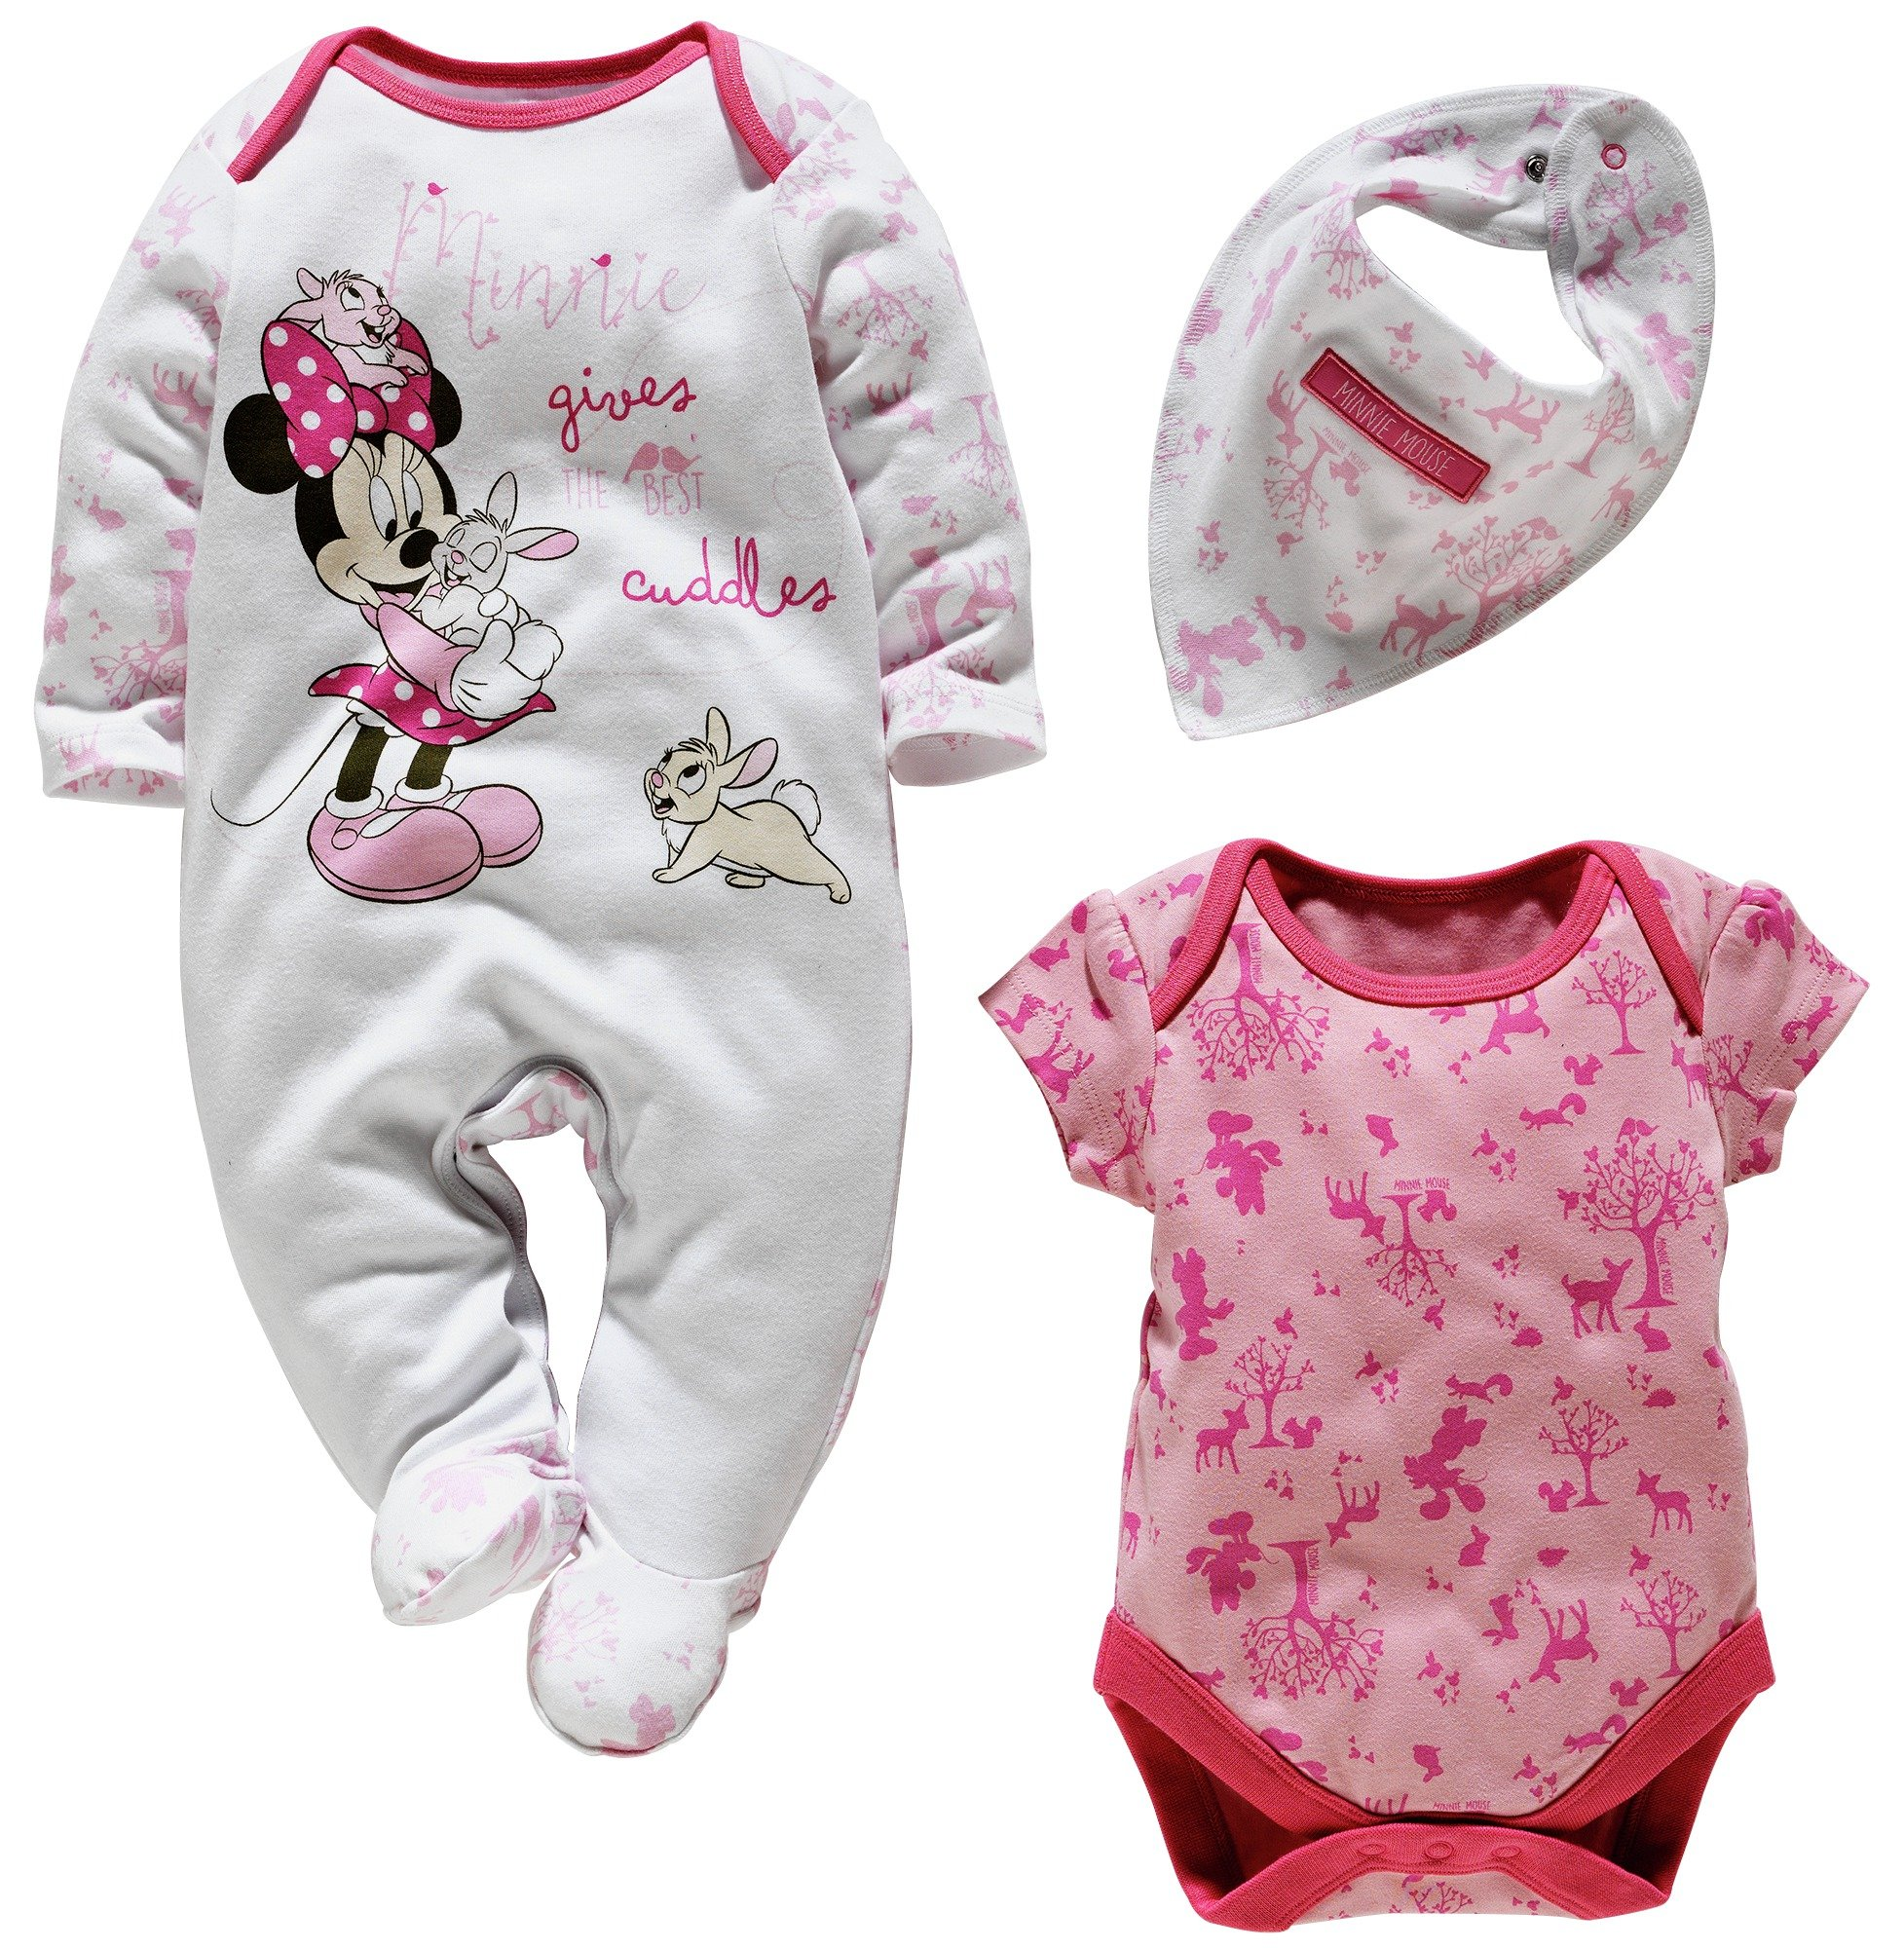 Image of Baby Minnie Mouse Gift Set - 0-3 Months